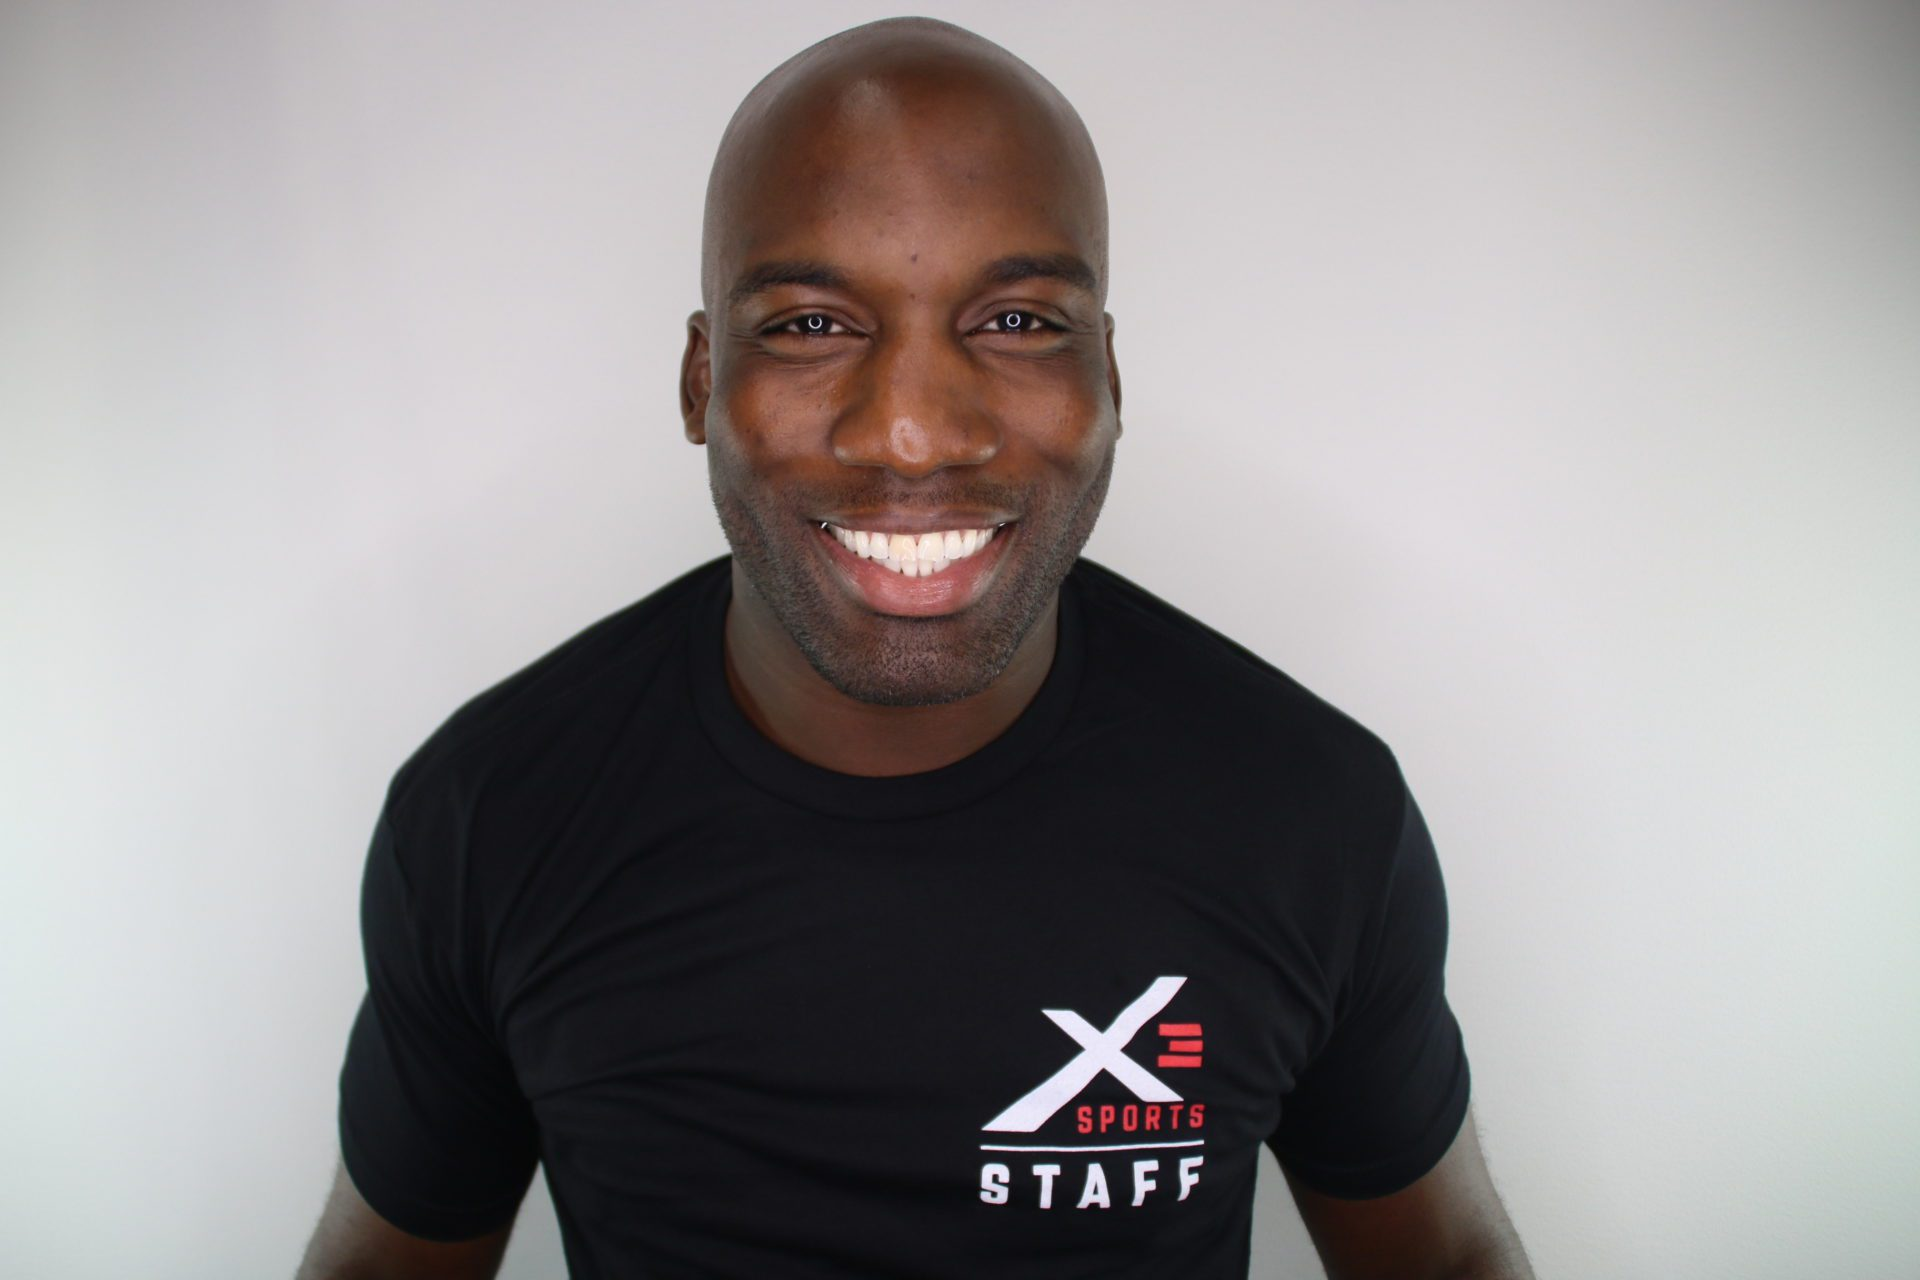 Larry Depeyster | X3 Sports Employee | X3 Sports